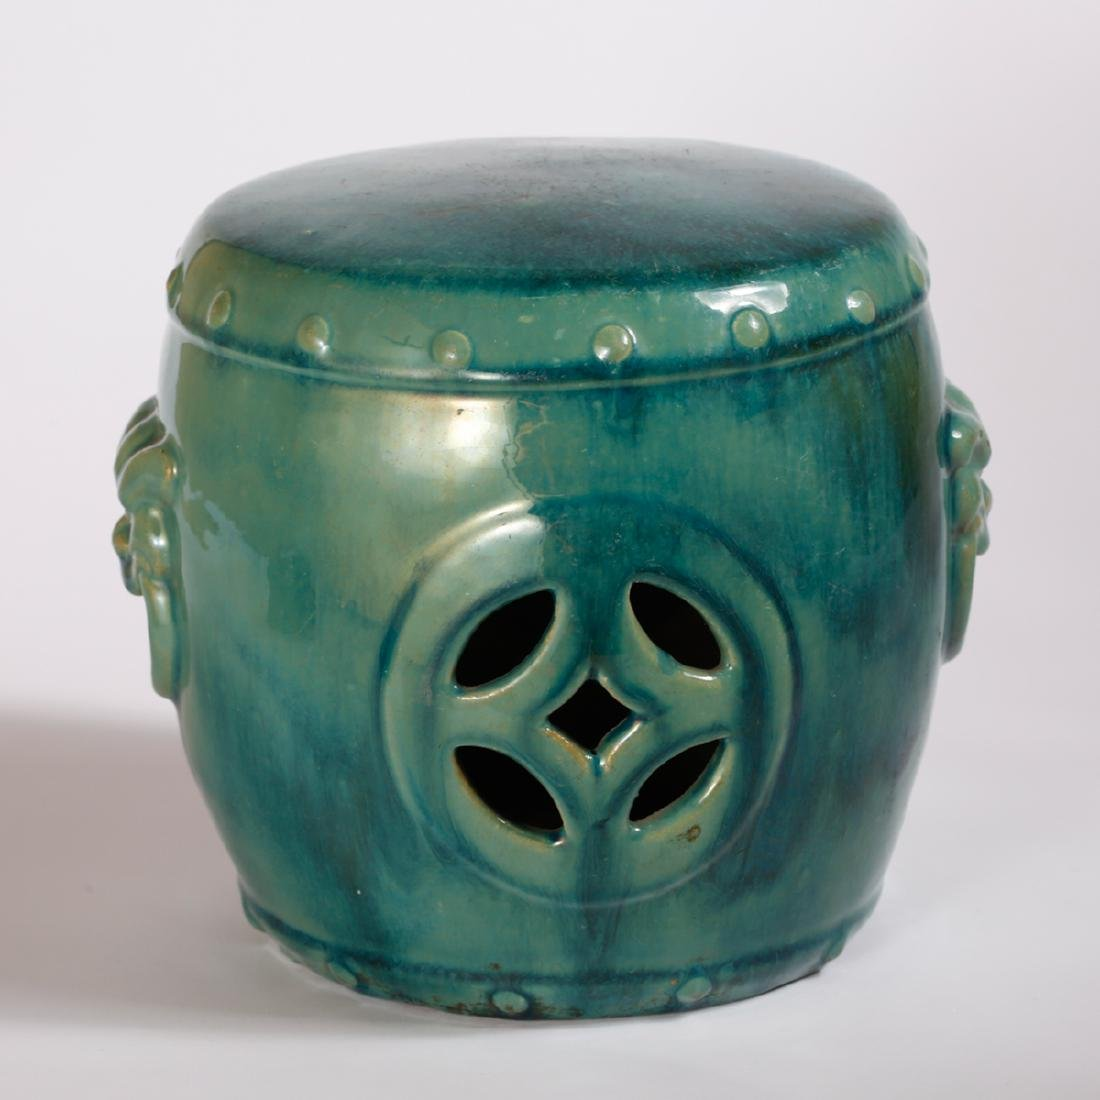 CHINESE TURQUOISE GLAZED PORCELAIN STOOL - 3